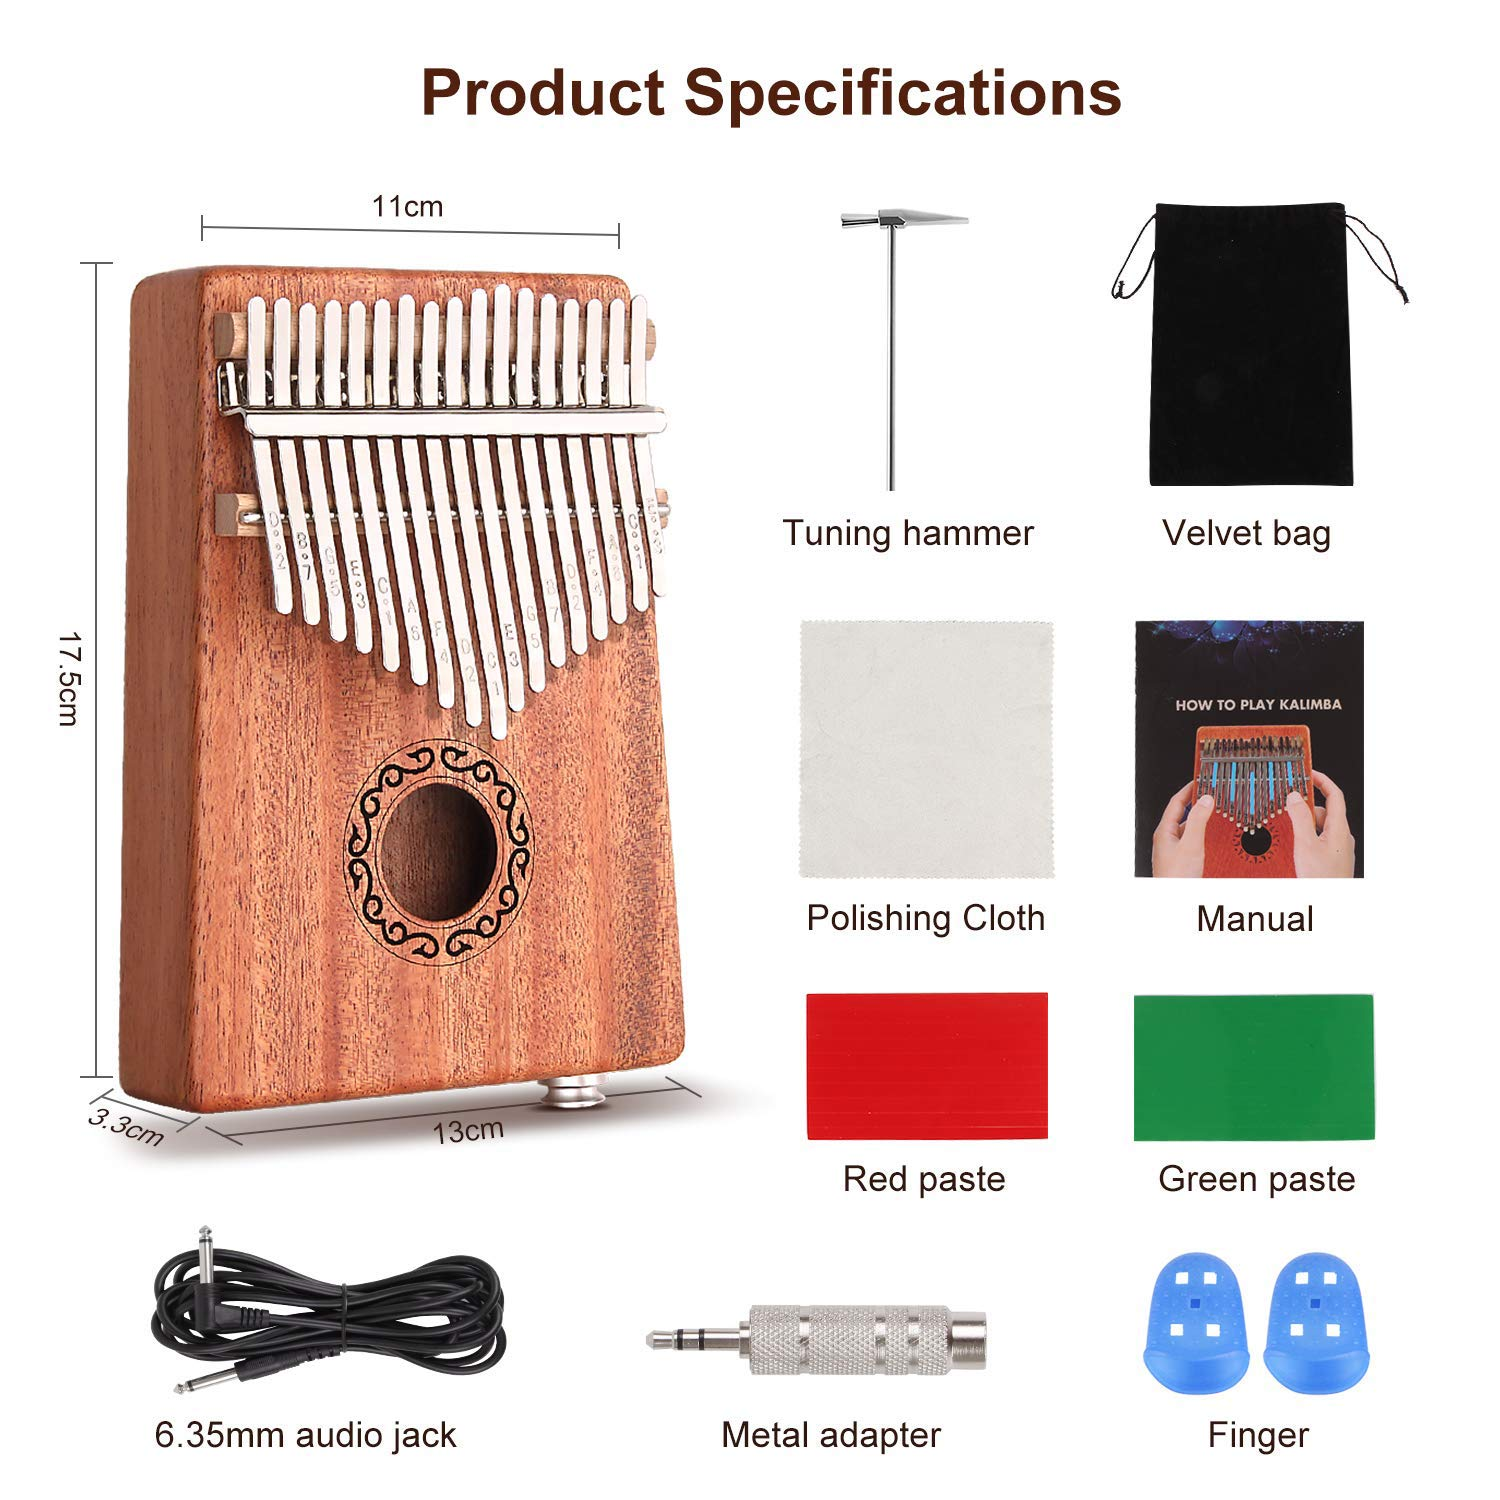 CXhome Electric Kalimba 17 Key Thumb Piano,Mbira African Mahogany Finger Piano Pickup with 6.35mm Audio Interface Sanza Hand Kit, Likembe Musical Instruments for beginners or professioners by CXhome (Image #5)